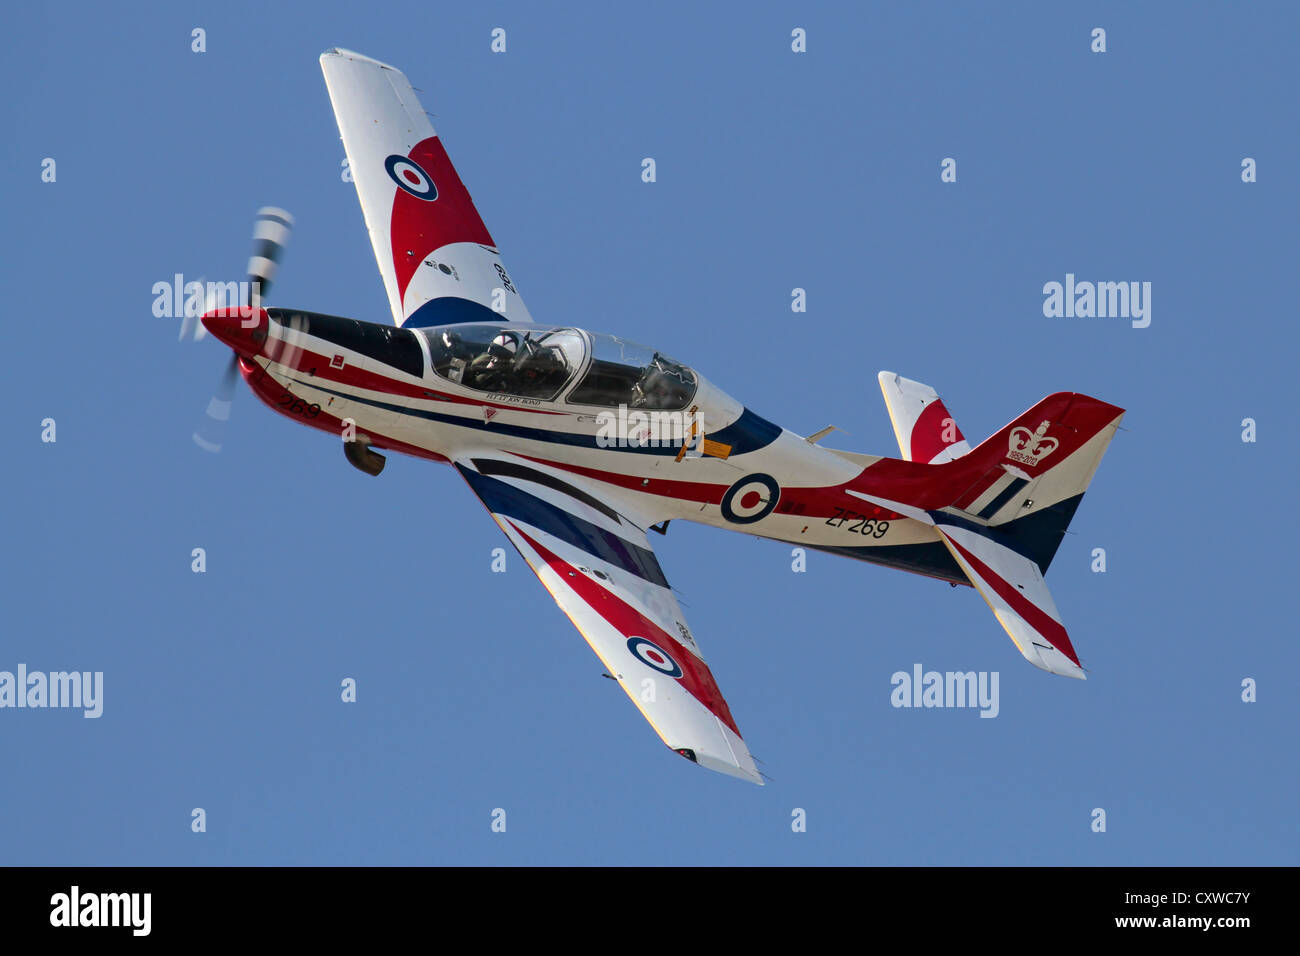 Royal Air Force Tucano T1 turboprop trainer aeroplane flying in special display colours against a blue sky - Stock Image